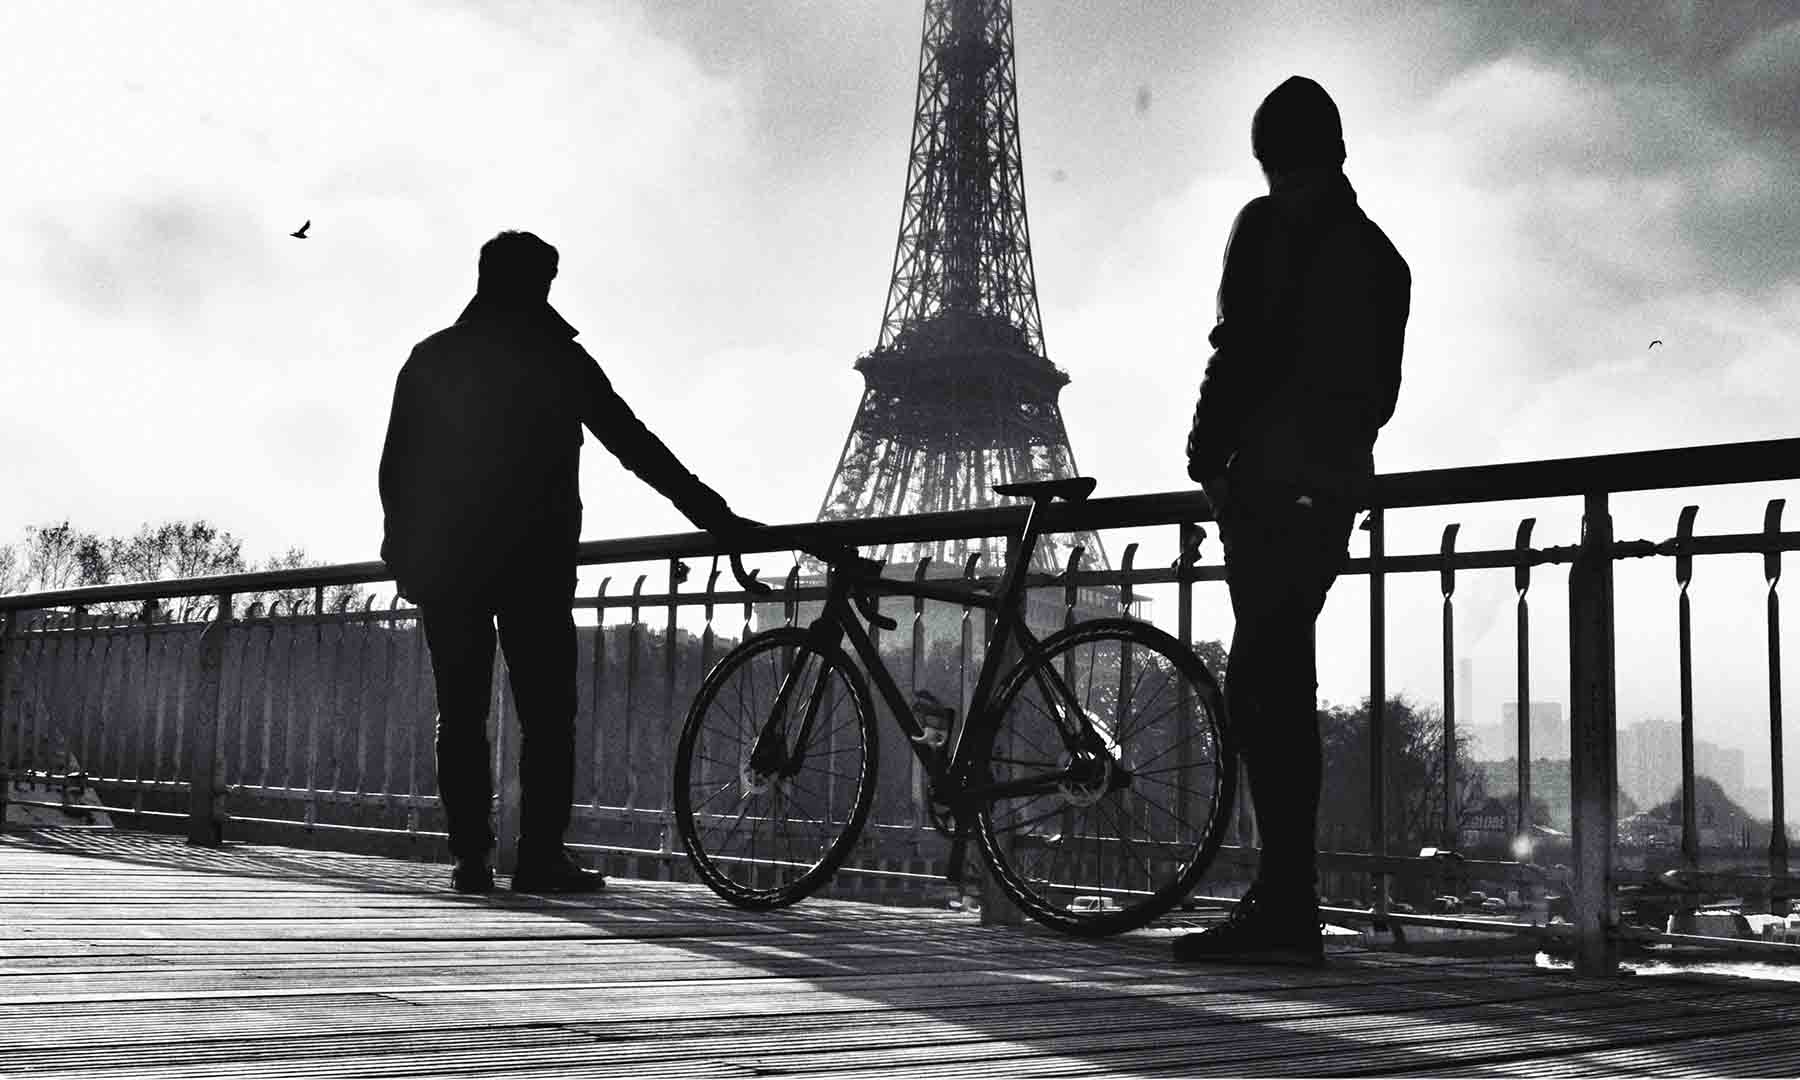 Discover the Sculpteo Bike Project from Paris to Las Vegas